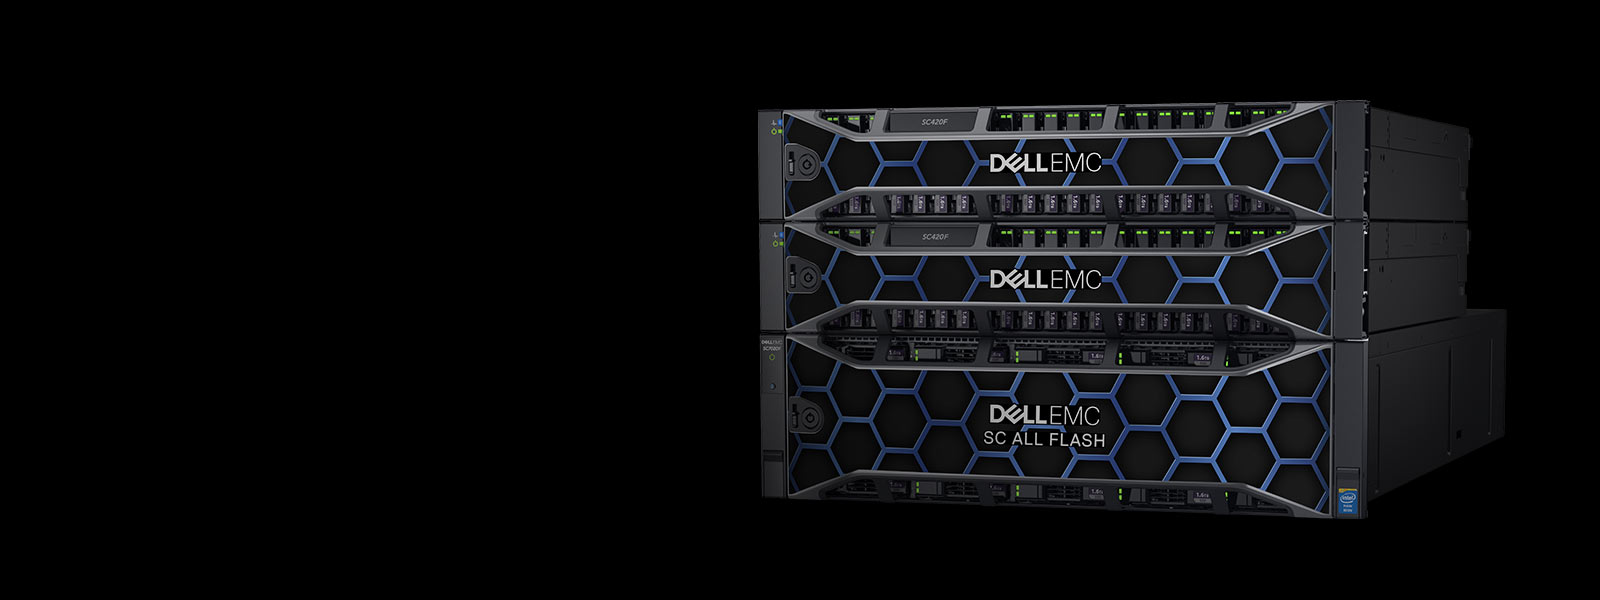 Celebrate! We've been selected to be a Dell EMC Storage Deployment